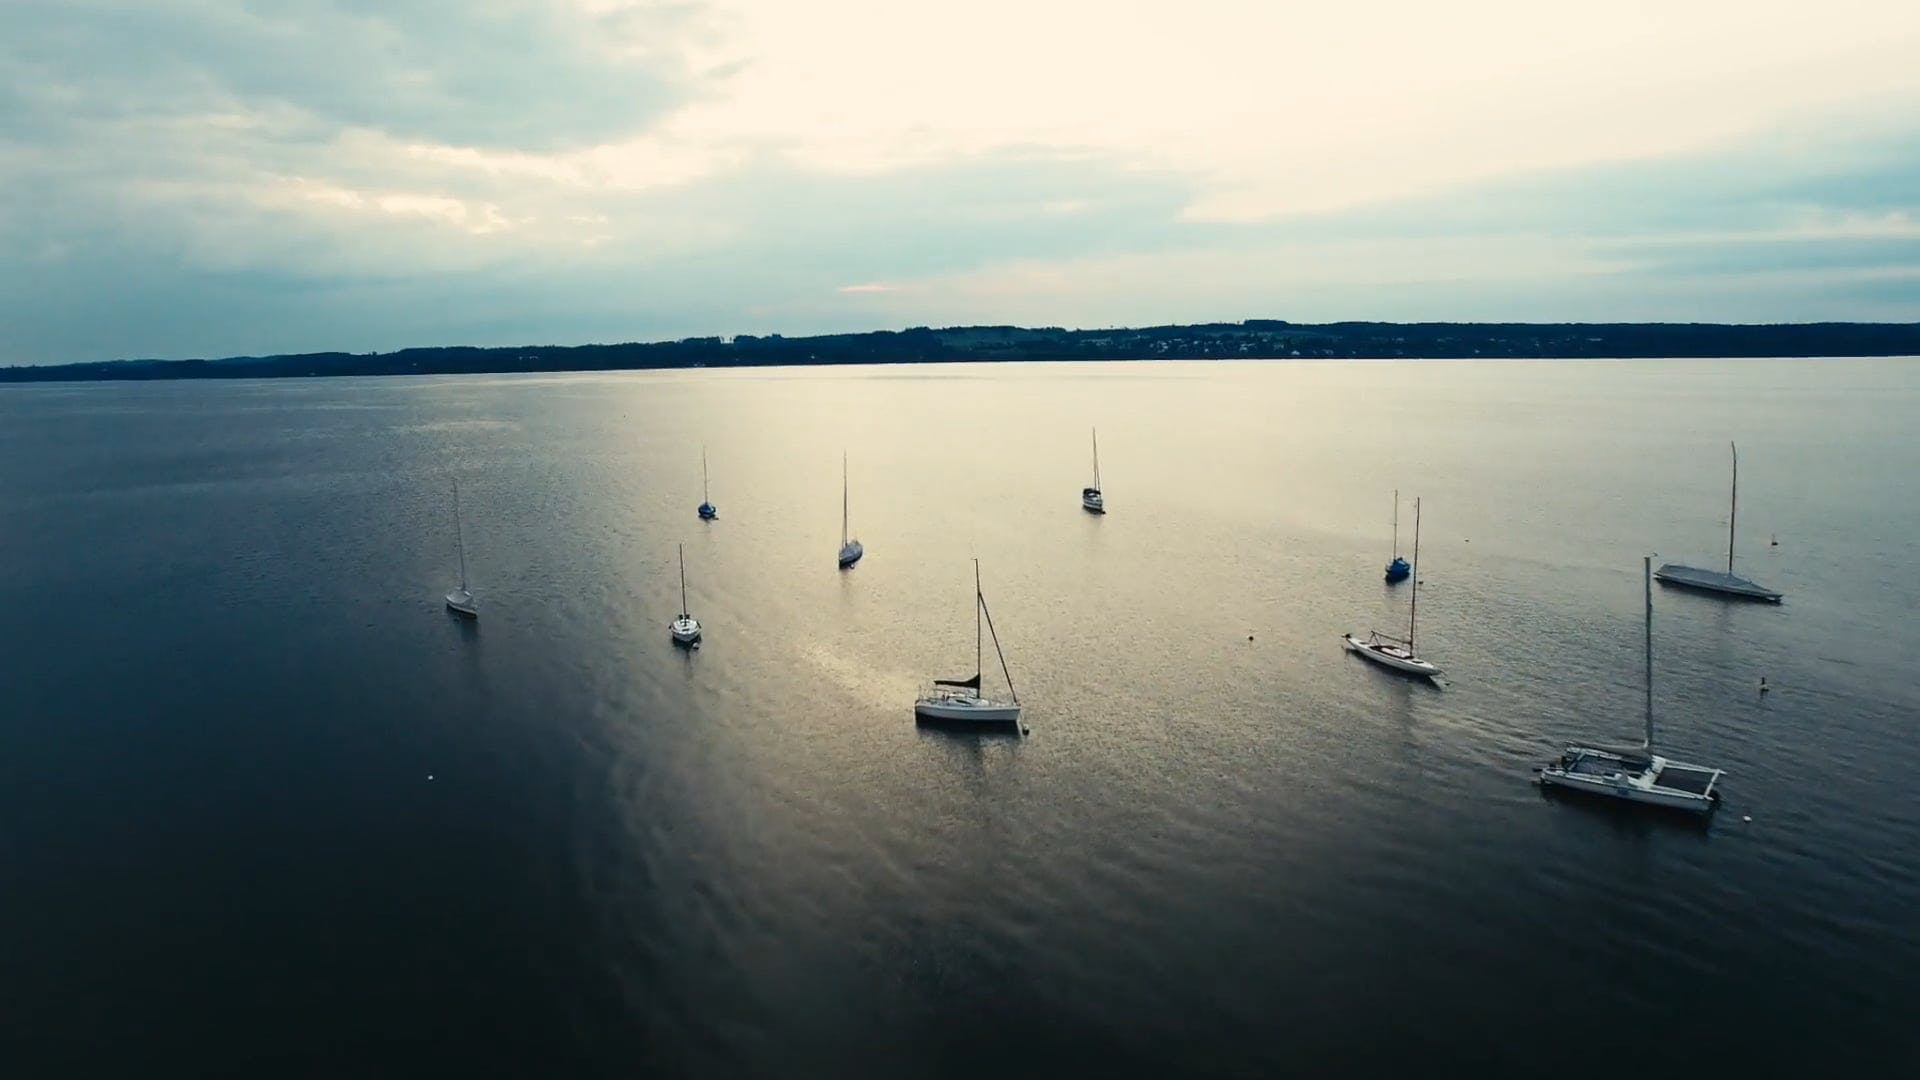 Aerial View of Sailboats on Body of Water